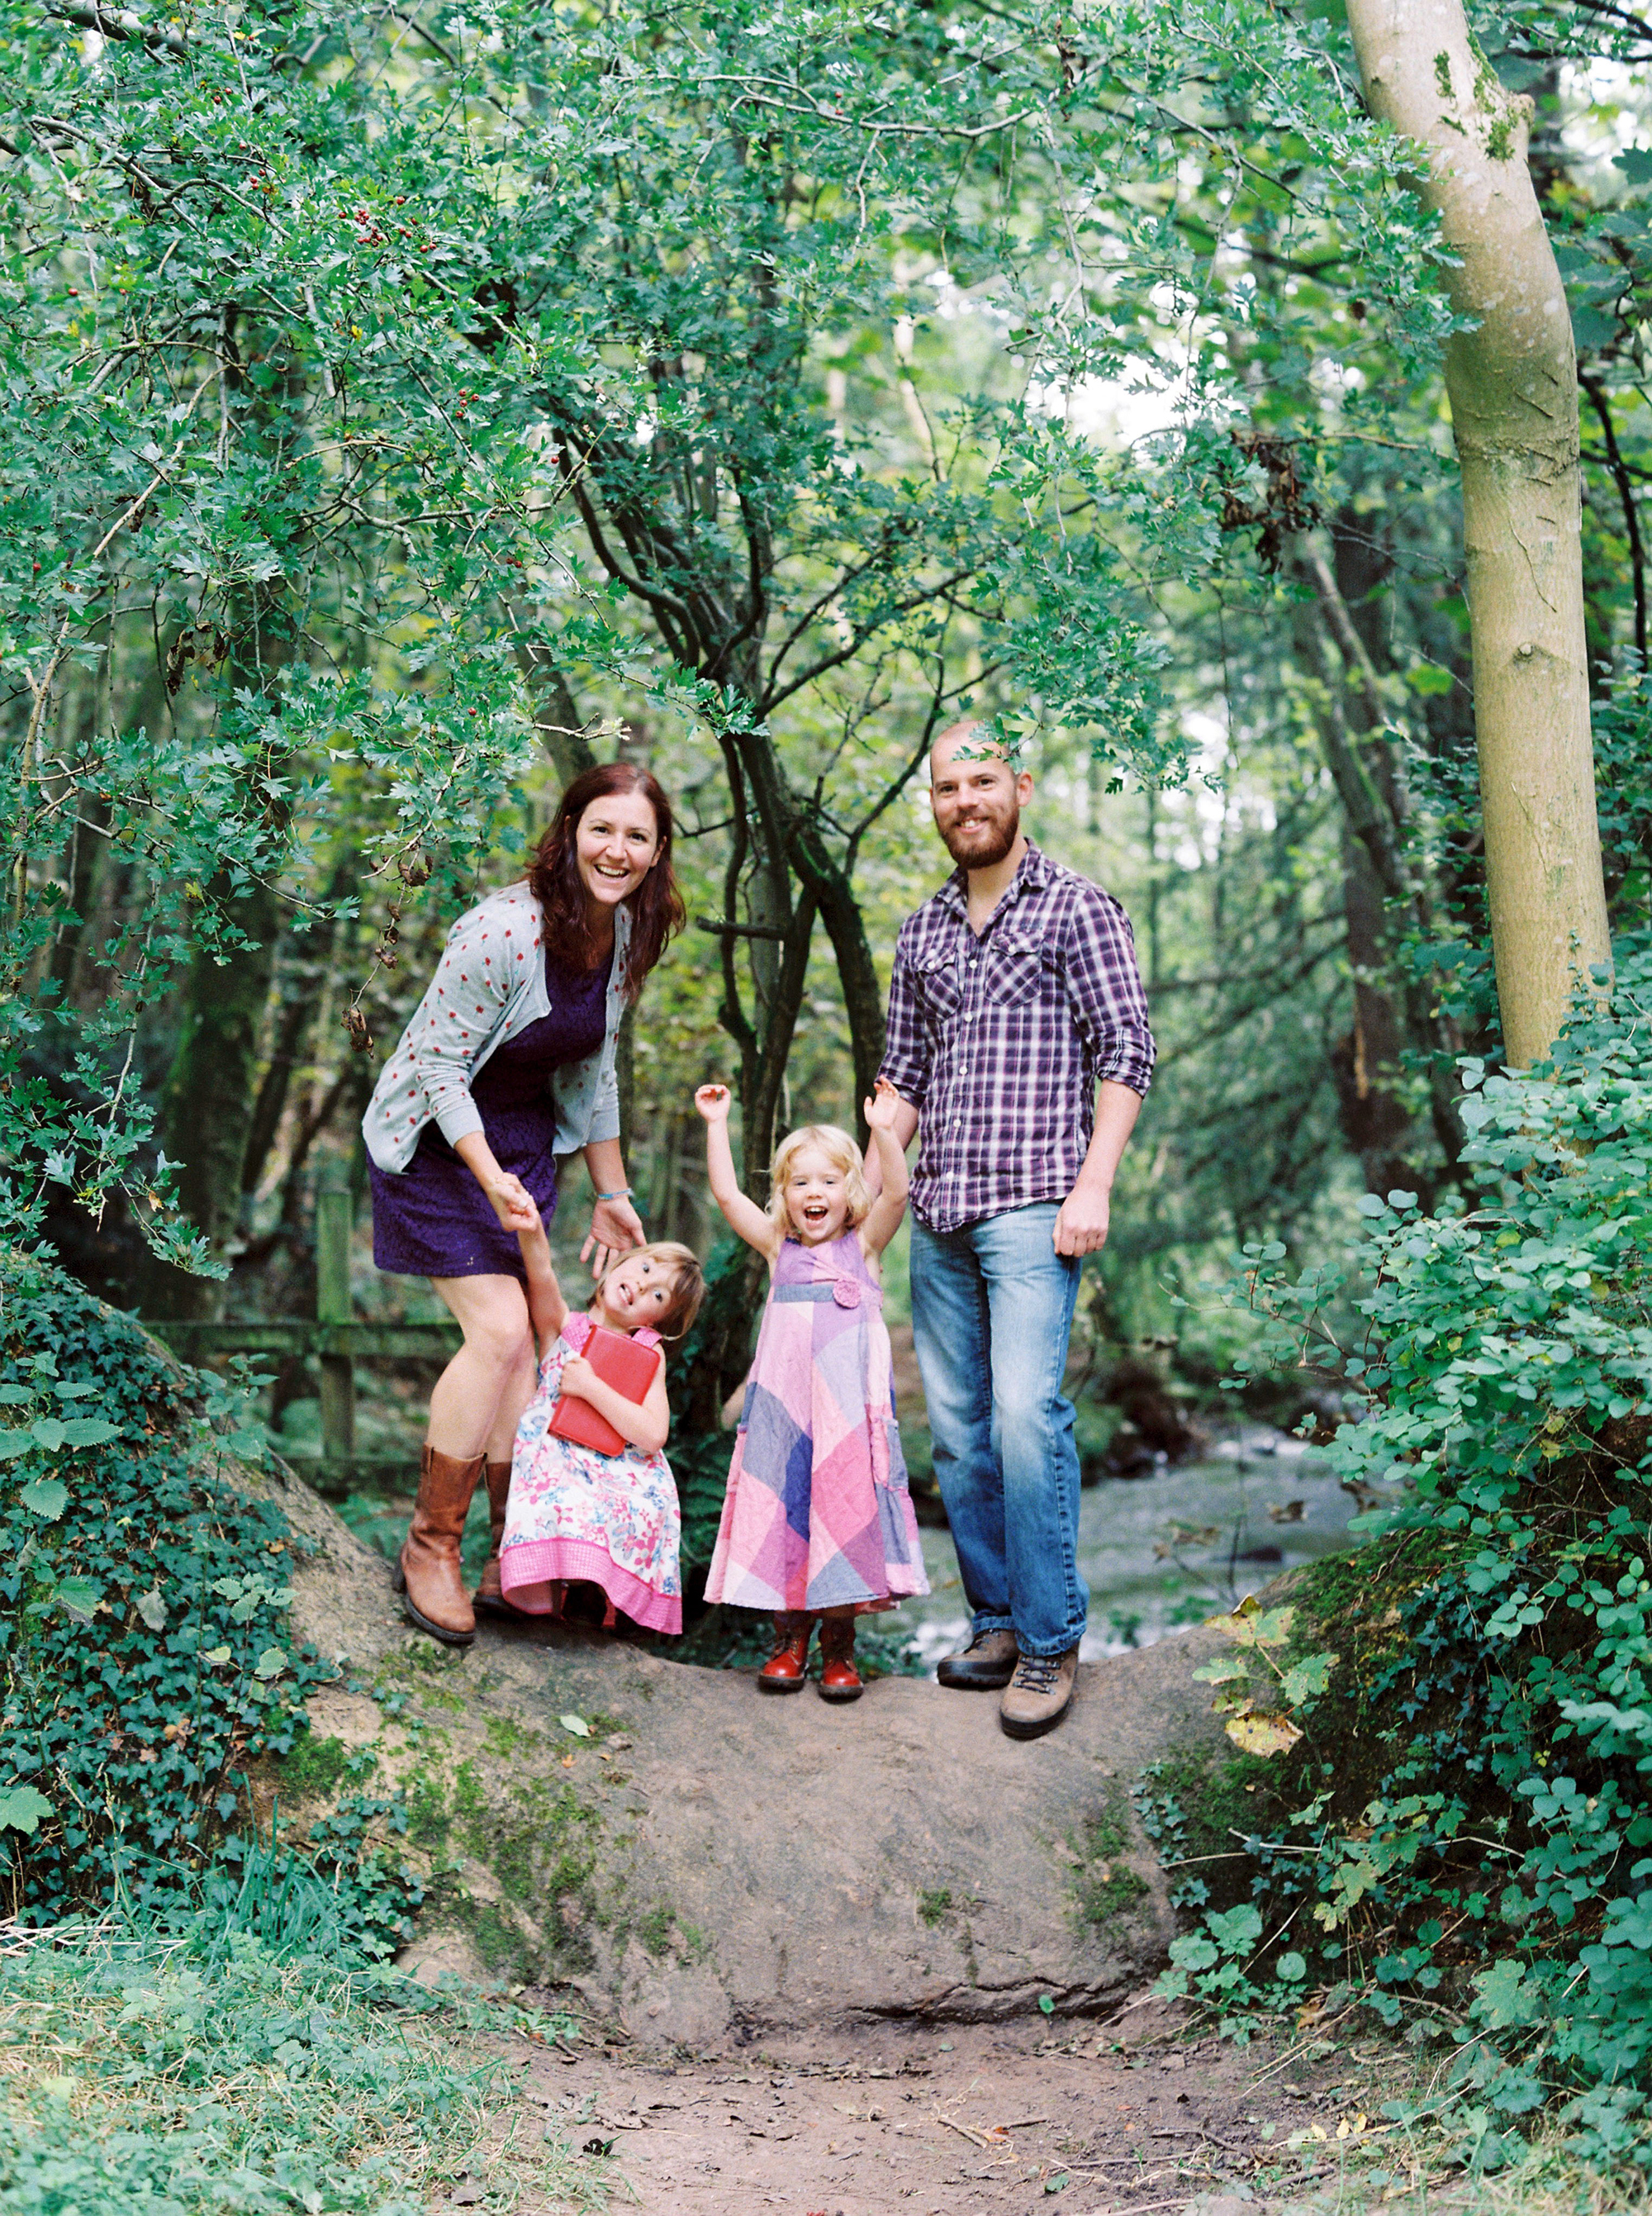 colourful family photos | Cumbria - A stroll and a play, perfect activity for a family shoot!